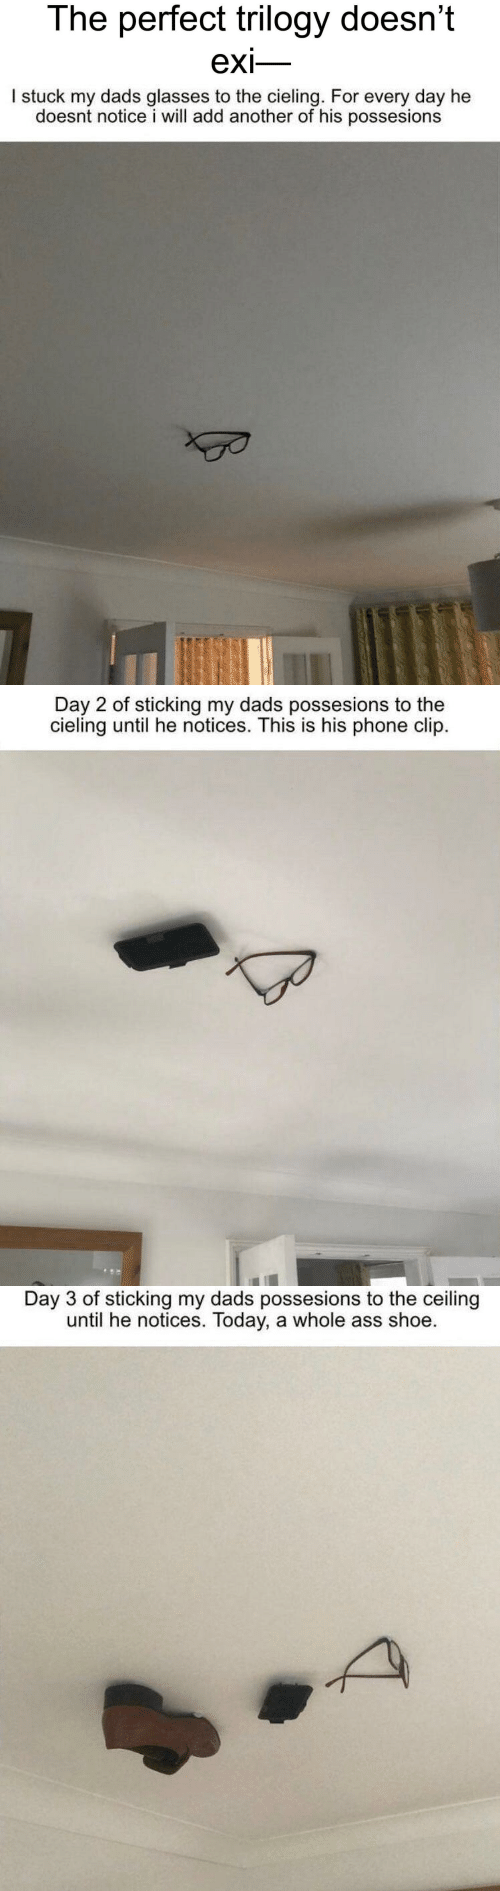 The Perfect: The perfect trilogy doesn't  exi-   I stuck my dads glasses to the cieling. For every day he  doesnt notice i will add another of his possesions   Day 2 of sticking my dads possesions to the  cieling until he notices. This is his phone clip.   Day 3 of sticking my dads possesions to the ceiling  until he notices. Today, a whole ass shoe.